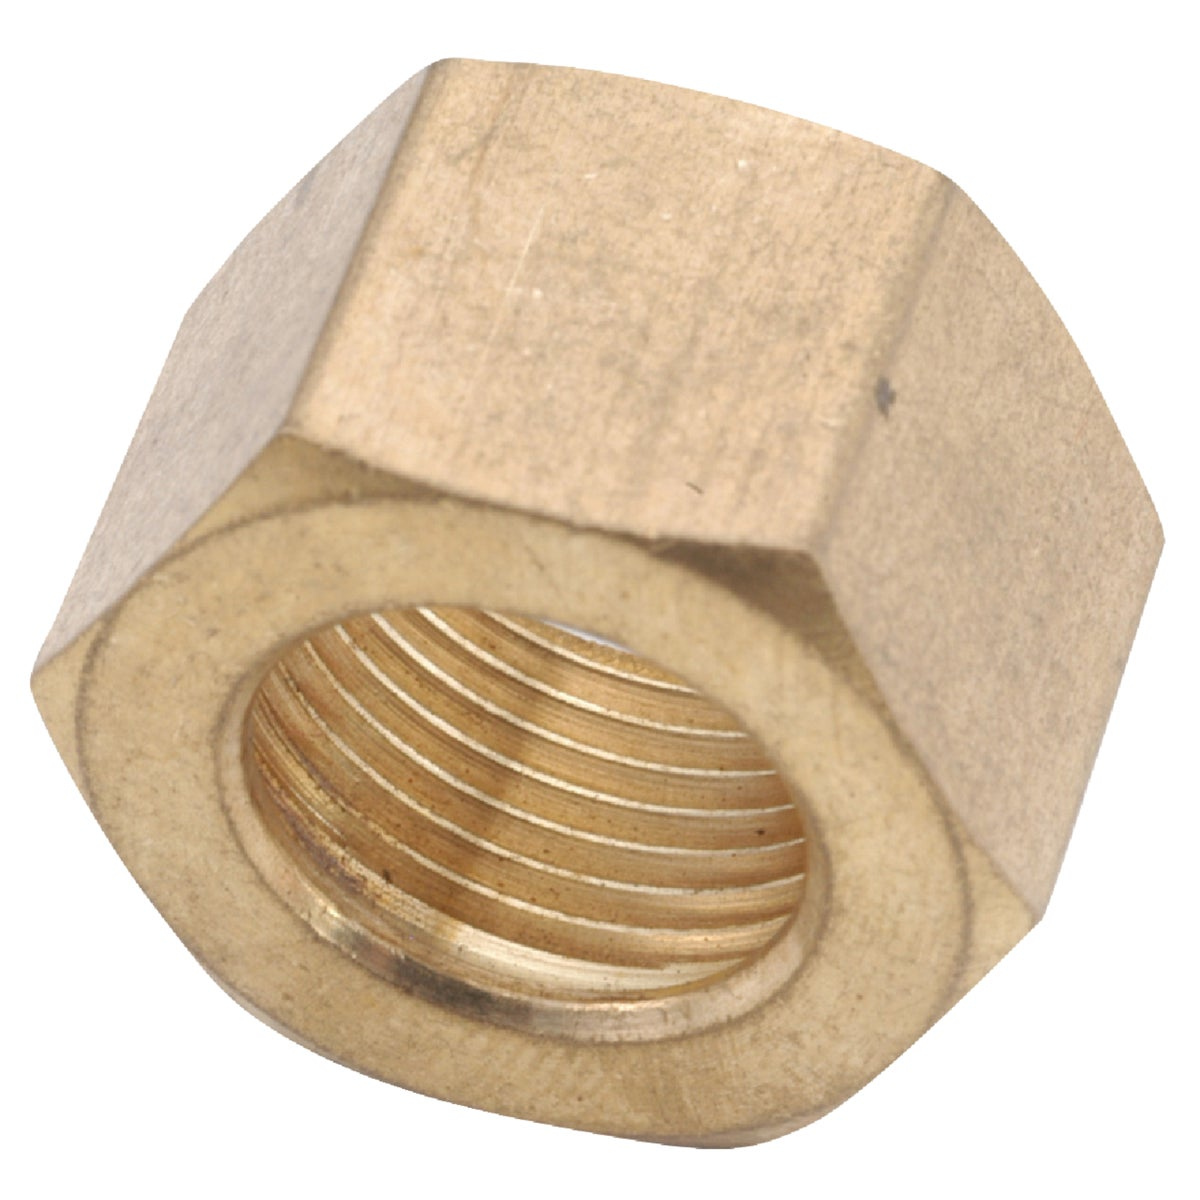 "1/4"" COMPRESSION NUT - 30061-04 by Anderson Metals Corp"